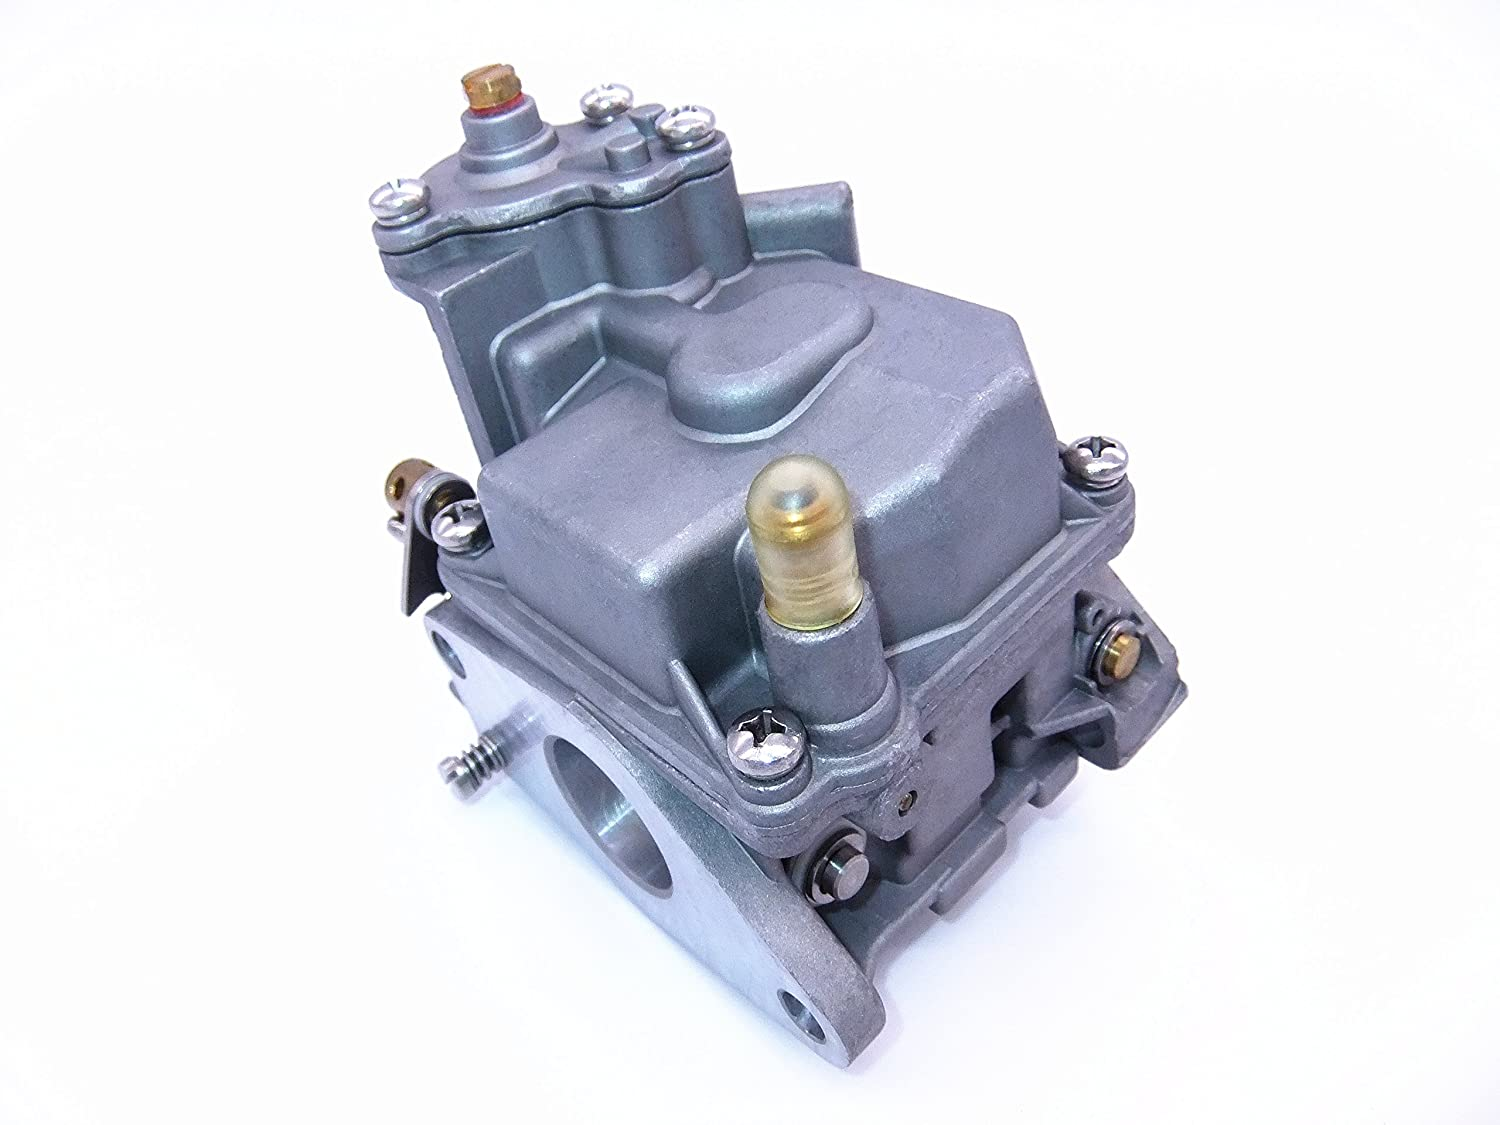 UANOFCN New Carburetor Assy for Yamaha 66M-14301-11 66M-14301-00 66M-14301-11 66M-14301-00 for Yamaha 4-Stroke 15hp F15 Outboard Motors